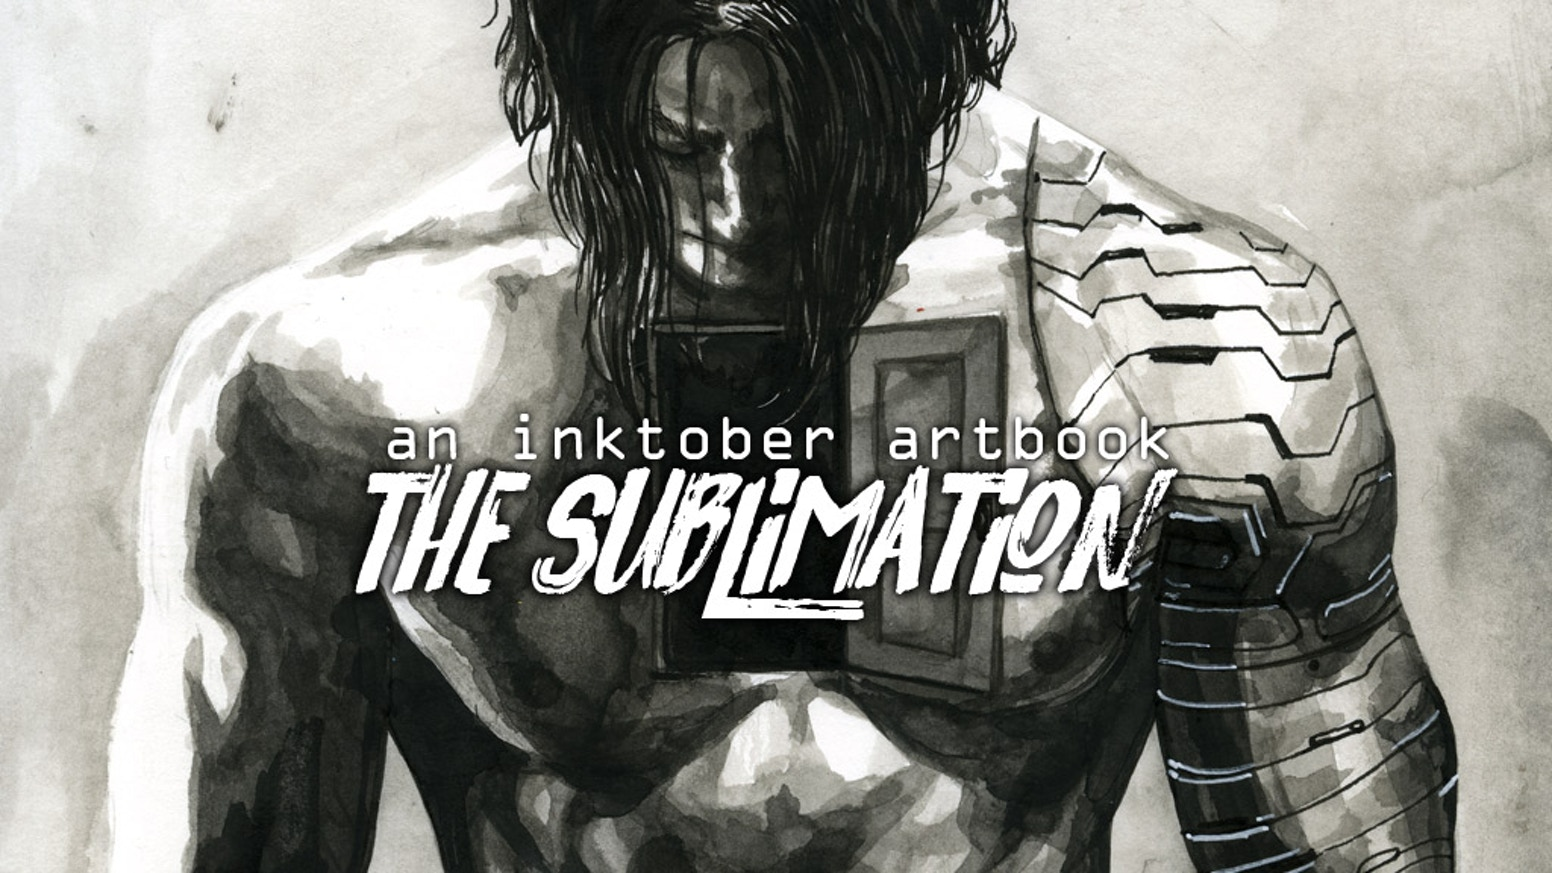 the sublimation: An Inktober Artbook by Kaitlin Wadley — Kickstarter